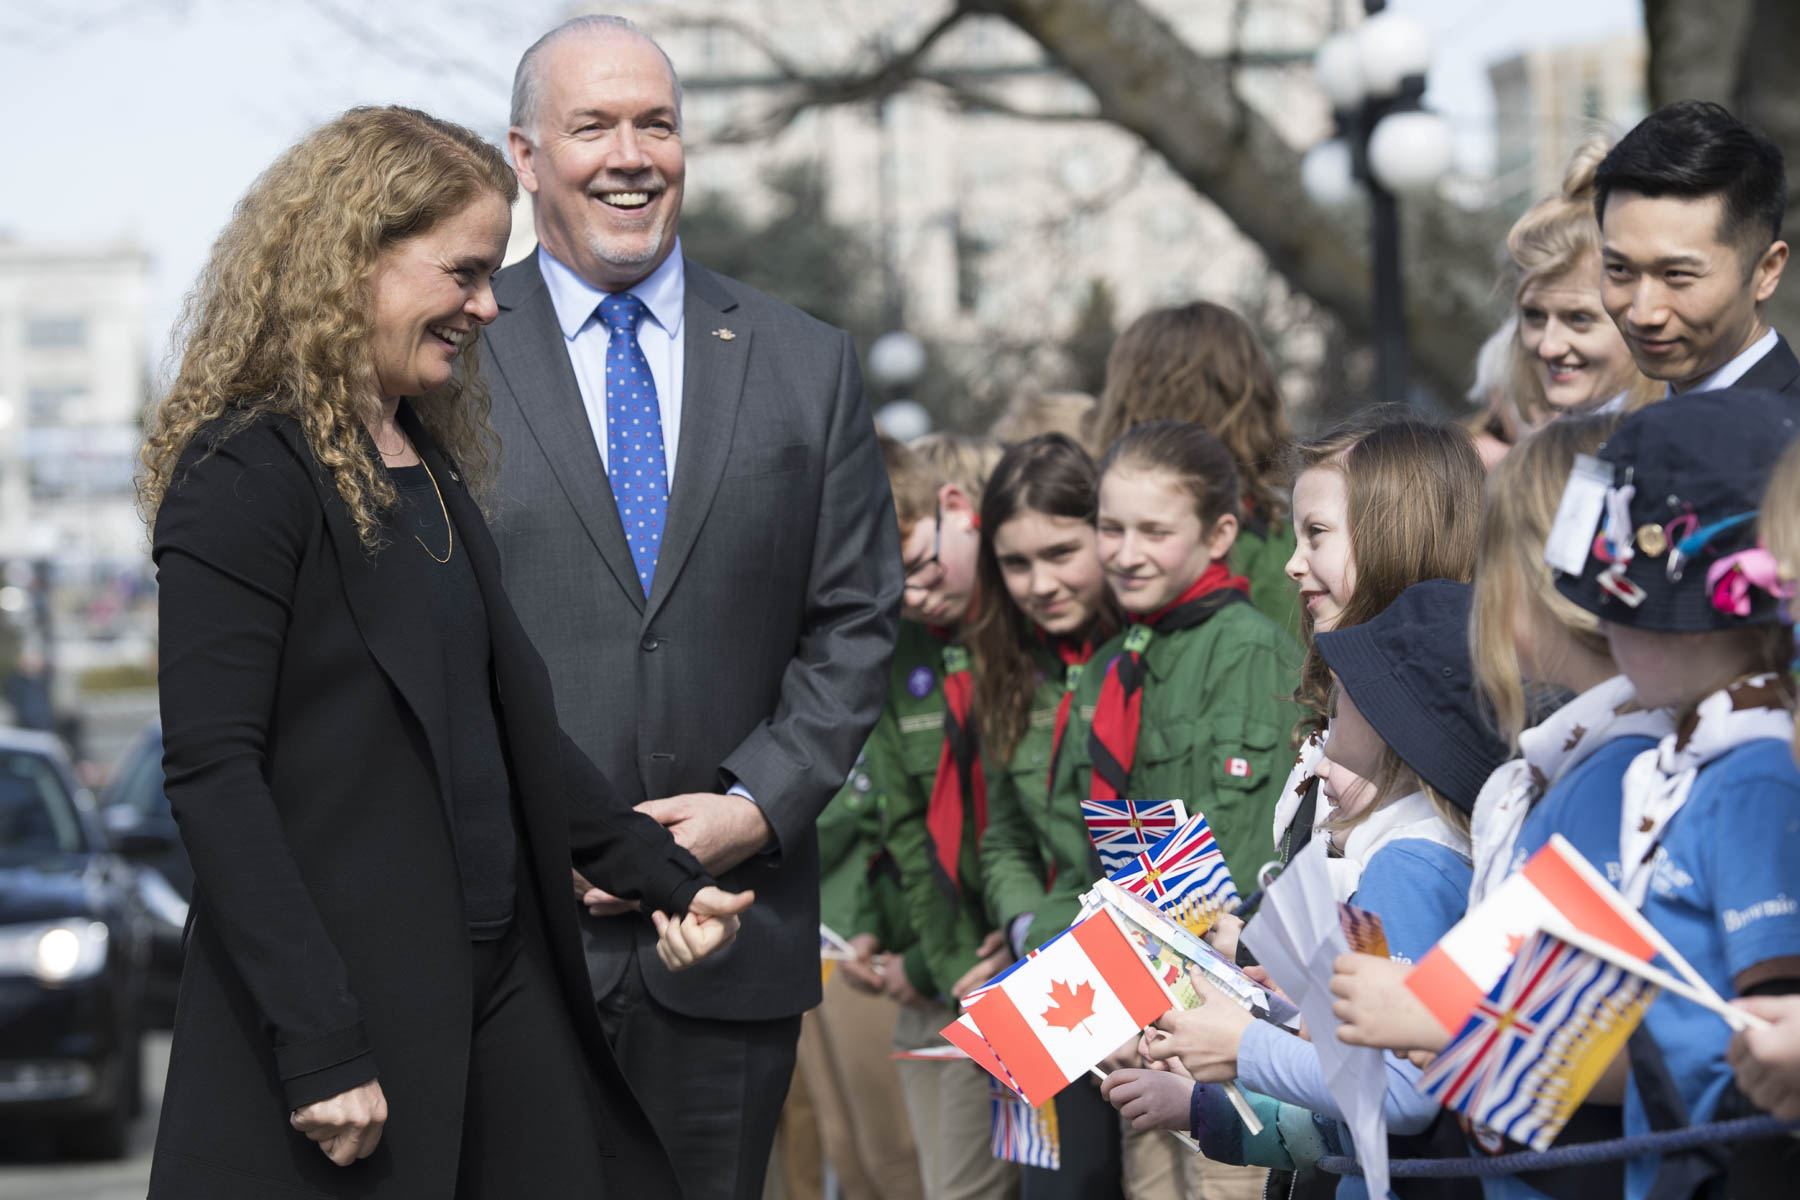 The Governor General was officially welcomed to the province by the Honourable John Horgan, Premier of British Columbia.